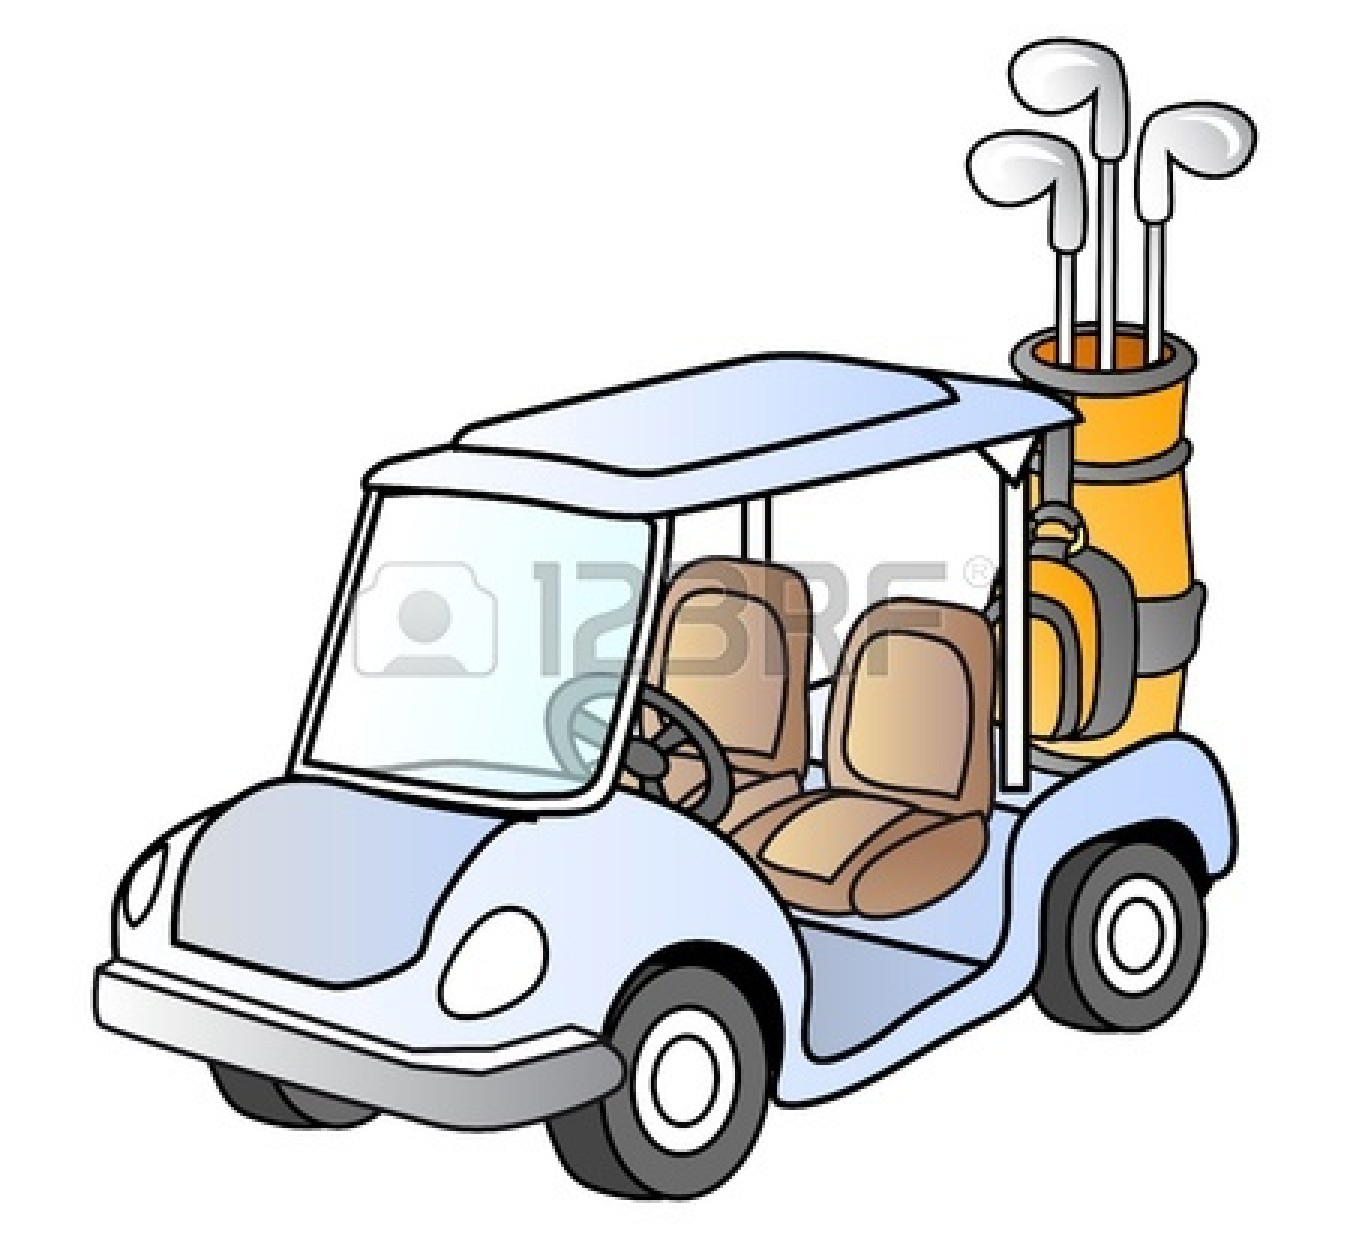 Golf Cart Clip Art Black And White | Clipart Panda - Free Clipart ...